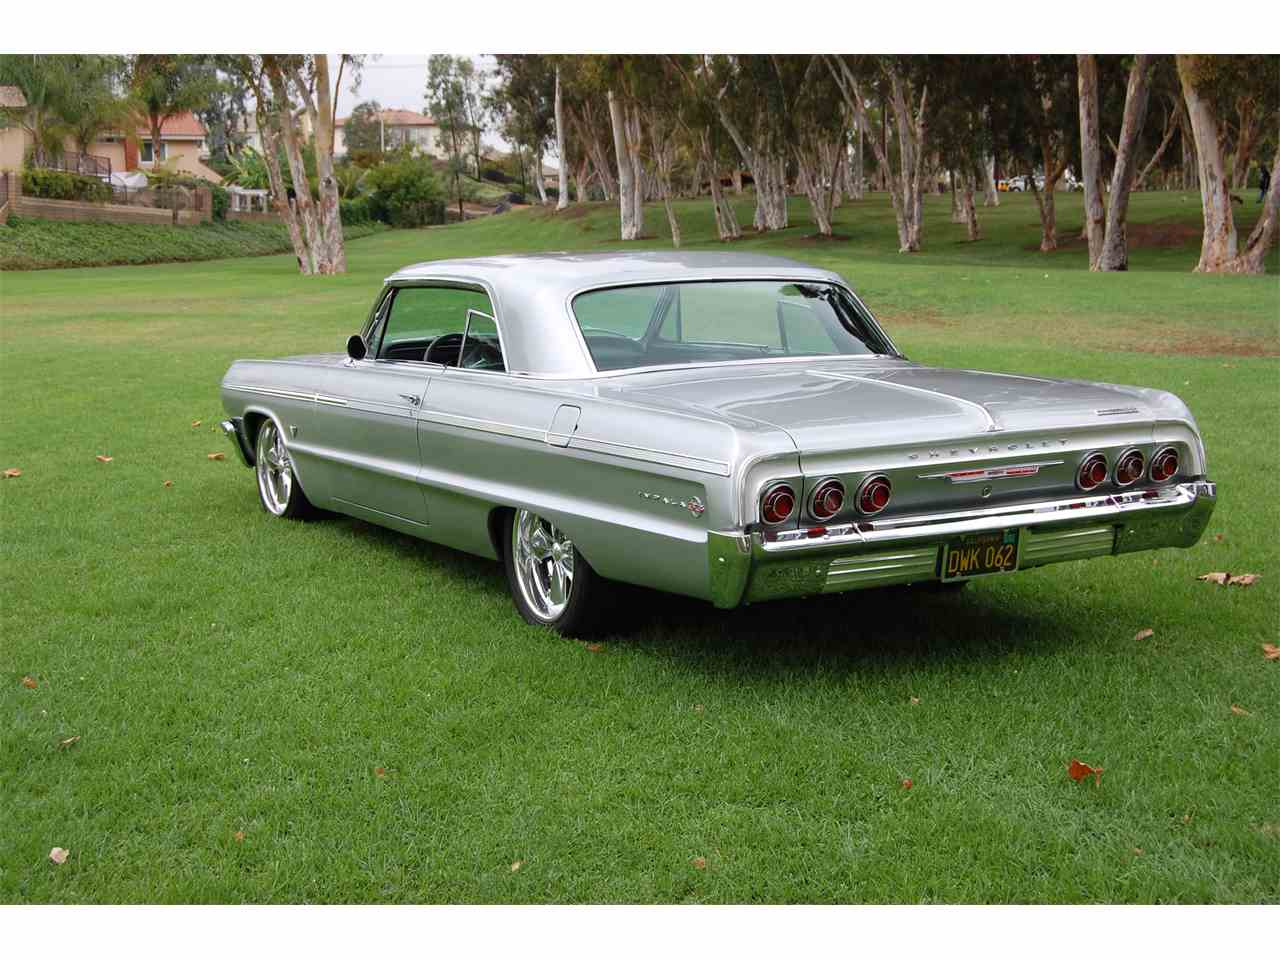 Classic Chevrolet Impala for Sale on ClassicCars.com